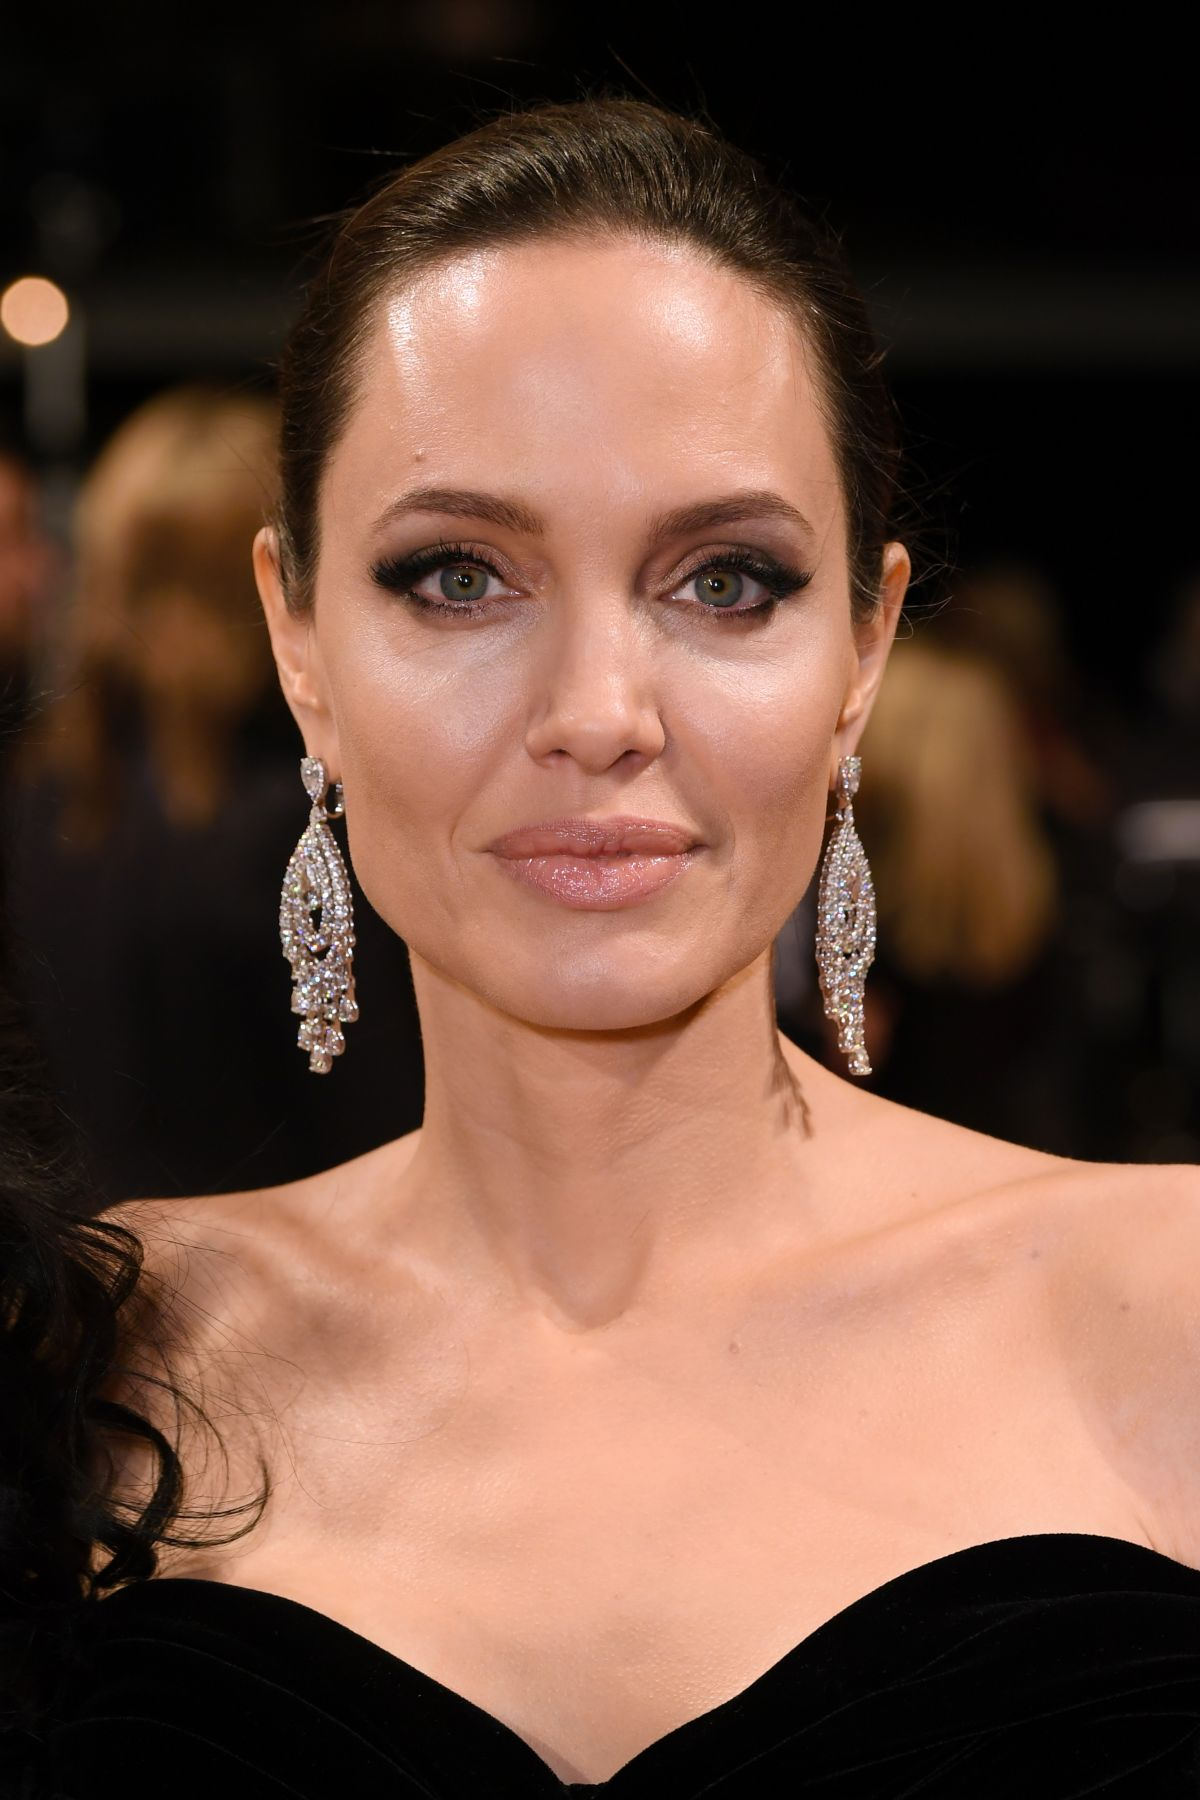 Baftas red carpet 2018: from Angelina Jolie to Lupita